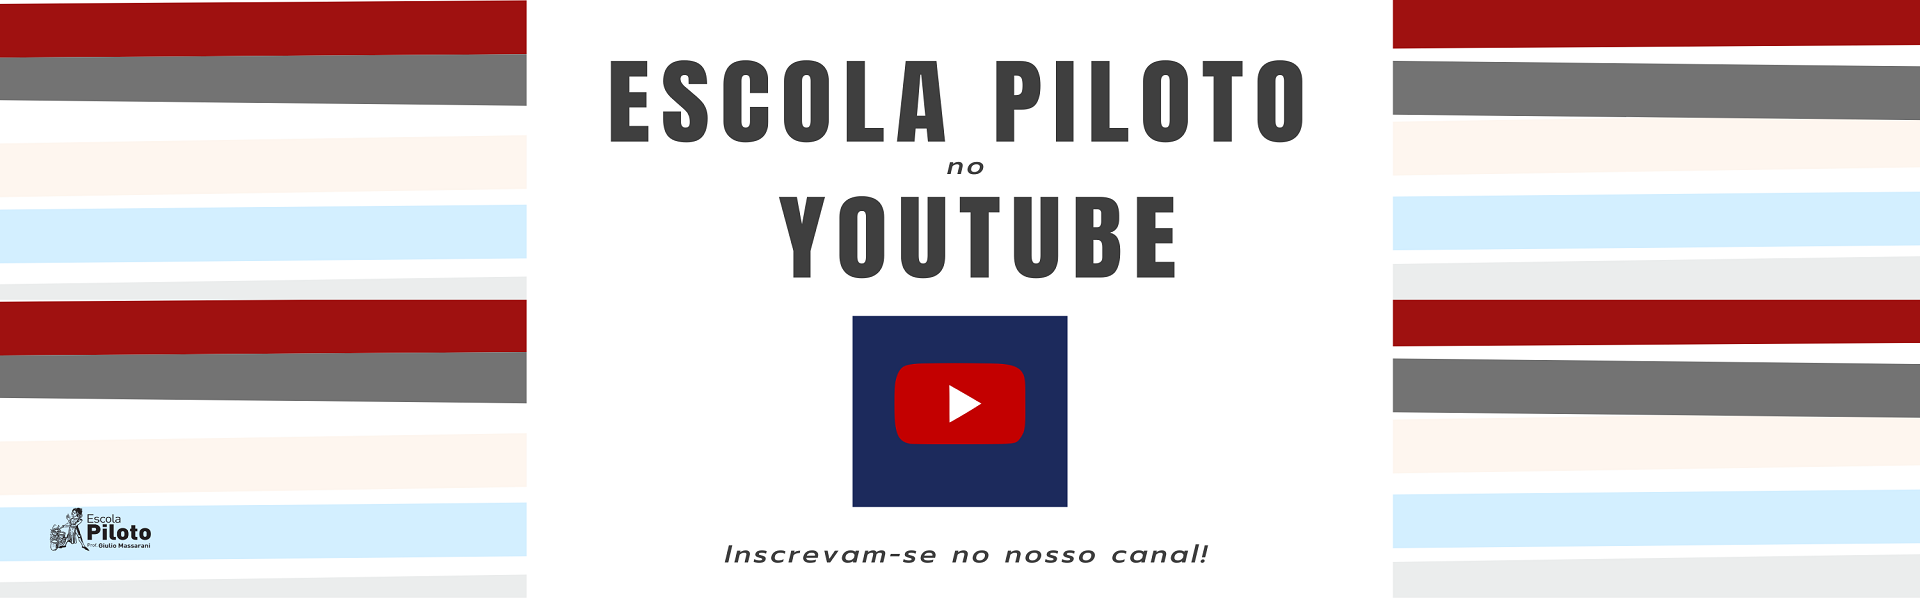 Canal do youtube